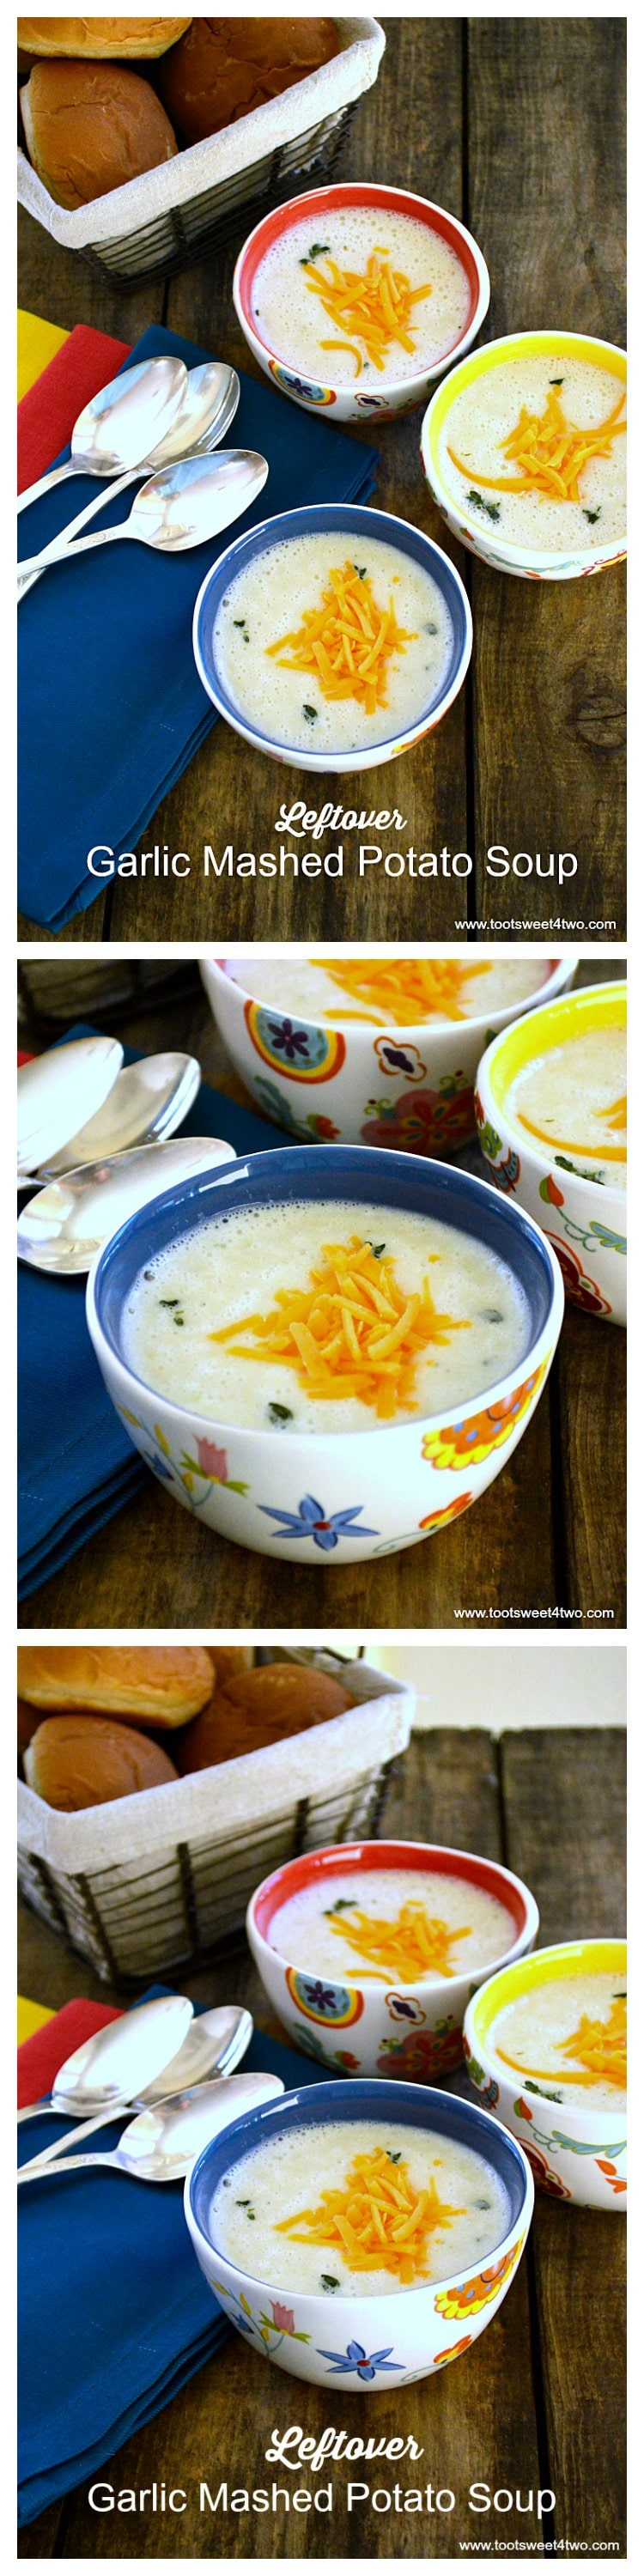 Leftover Garlic Mashed Potato Soup - a comfort classic reinvented from leftovers